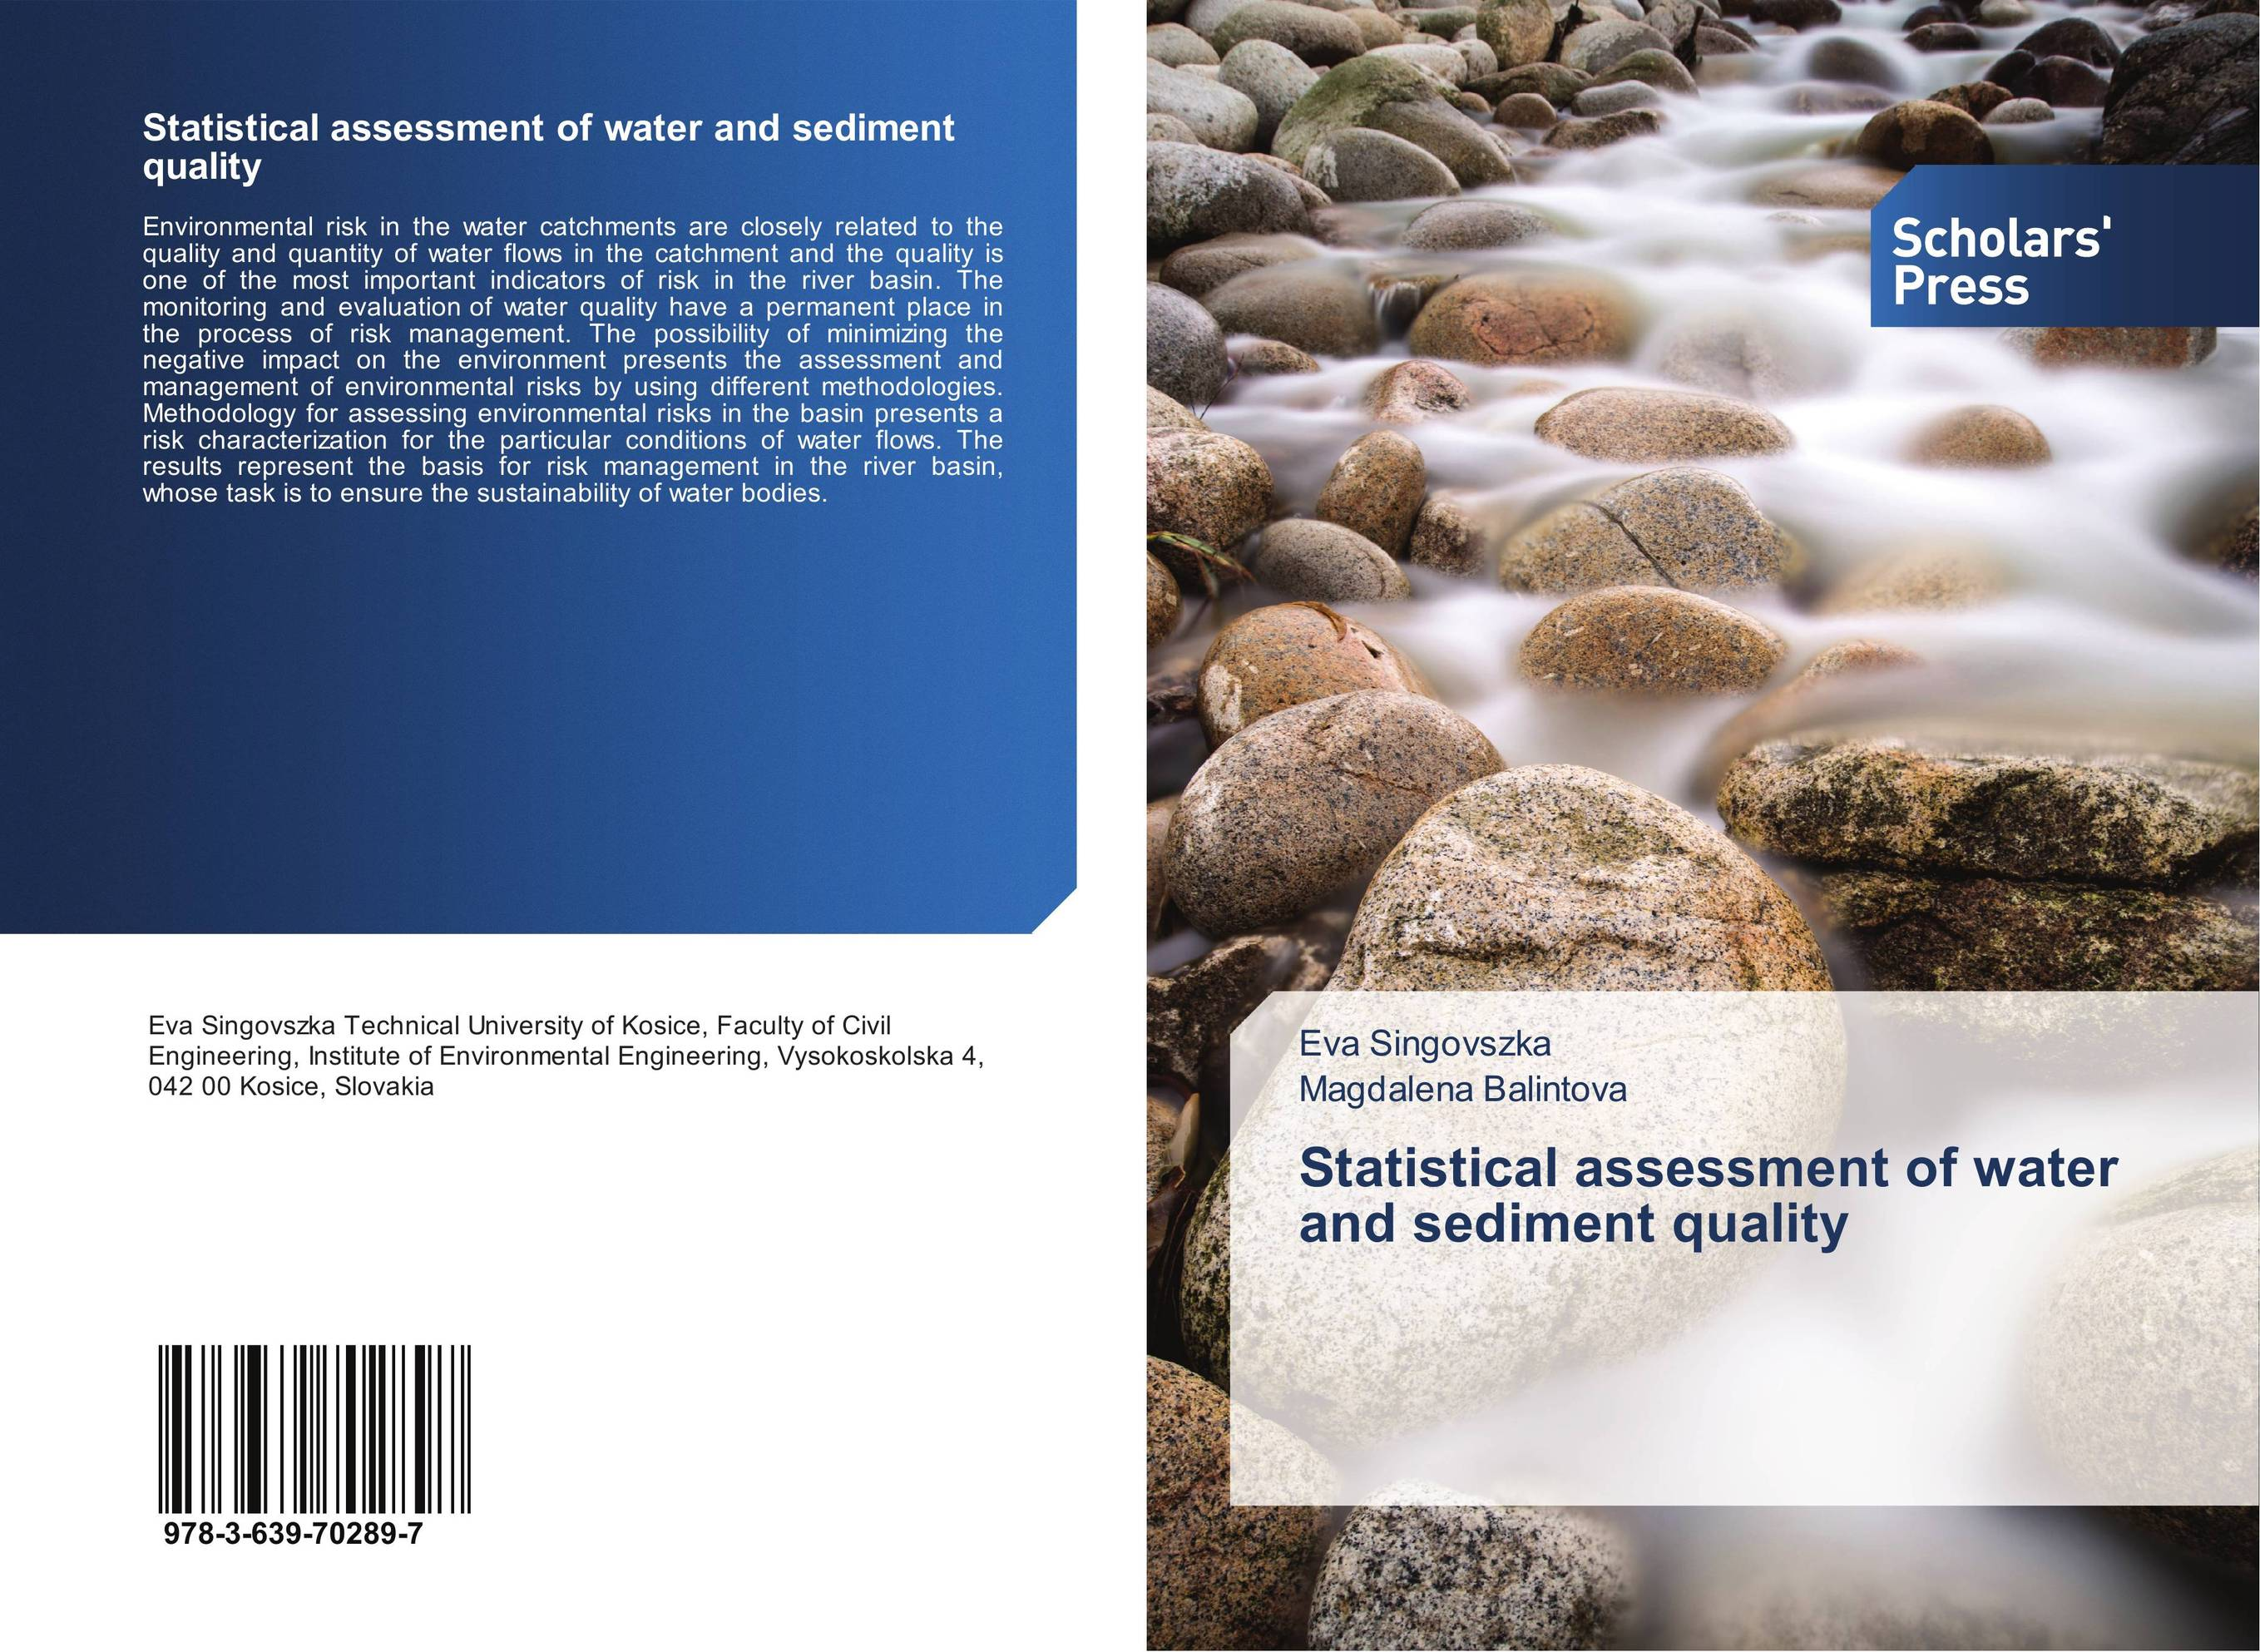 Statistical assessment of water and sediment quality a guide for environmental impact assessment